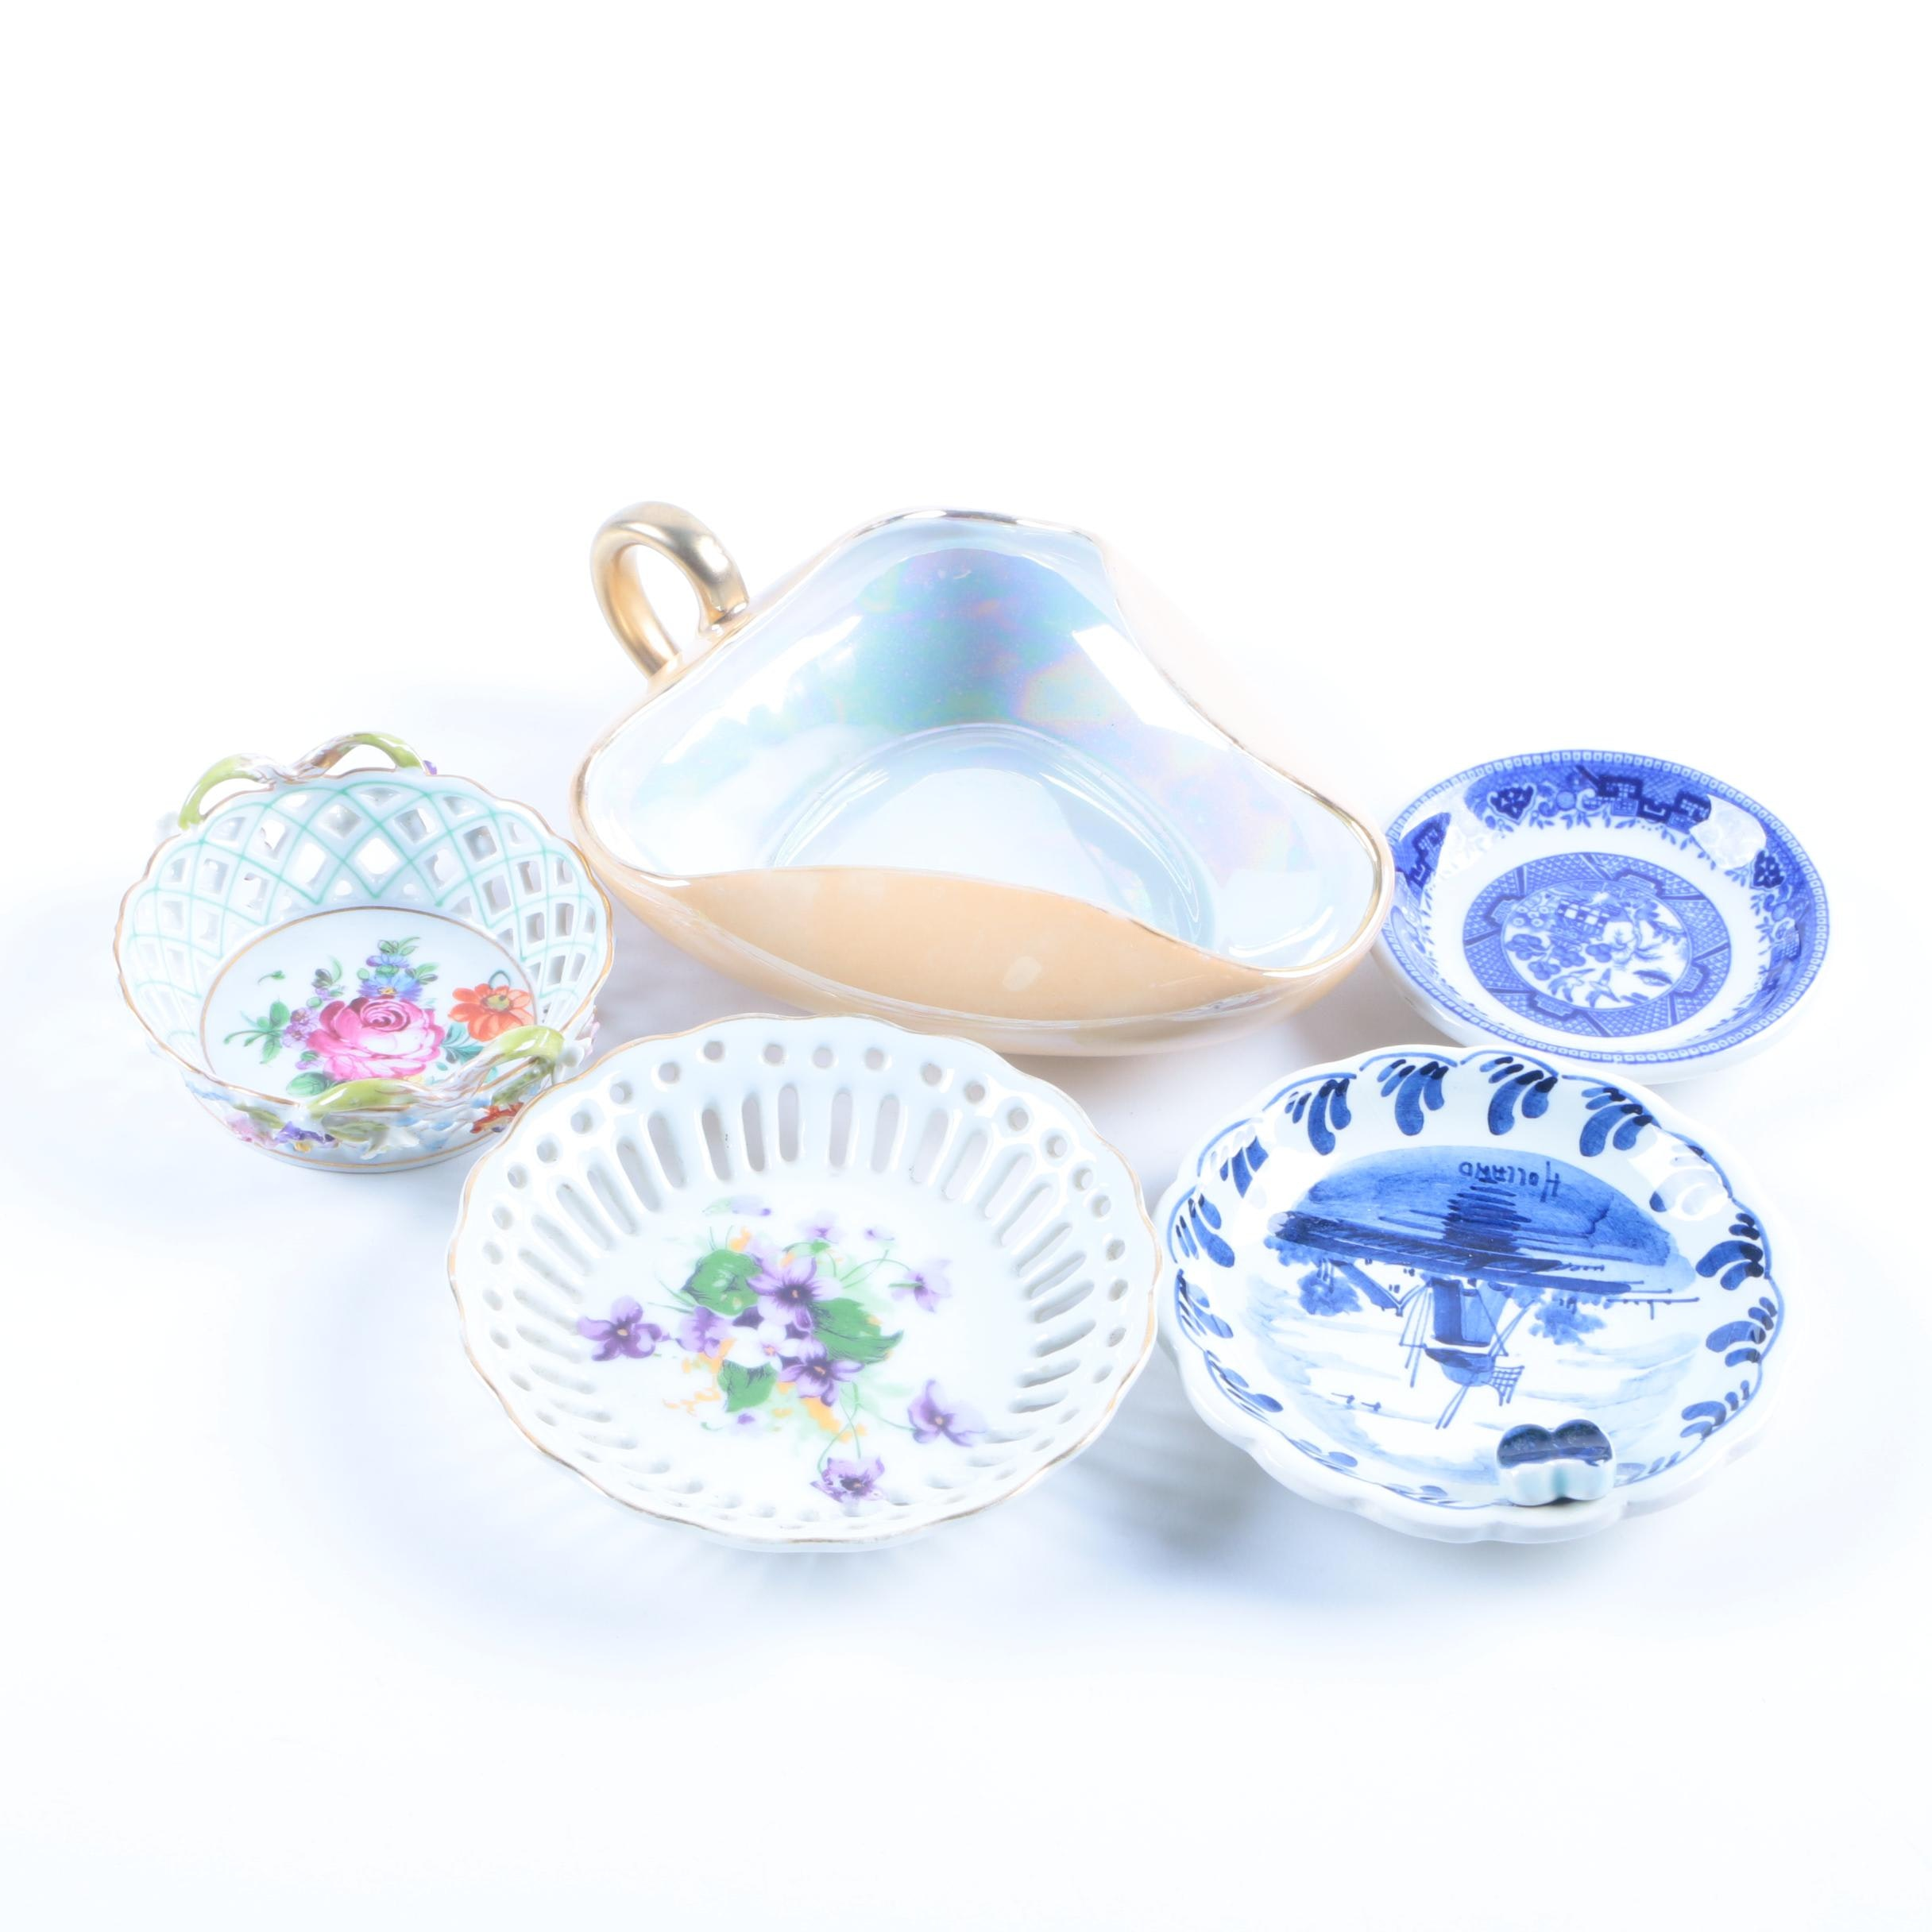 Delft, Dresden and Other Porcelain Tableware